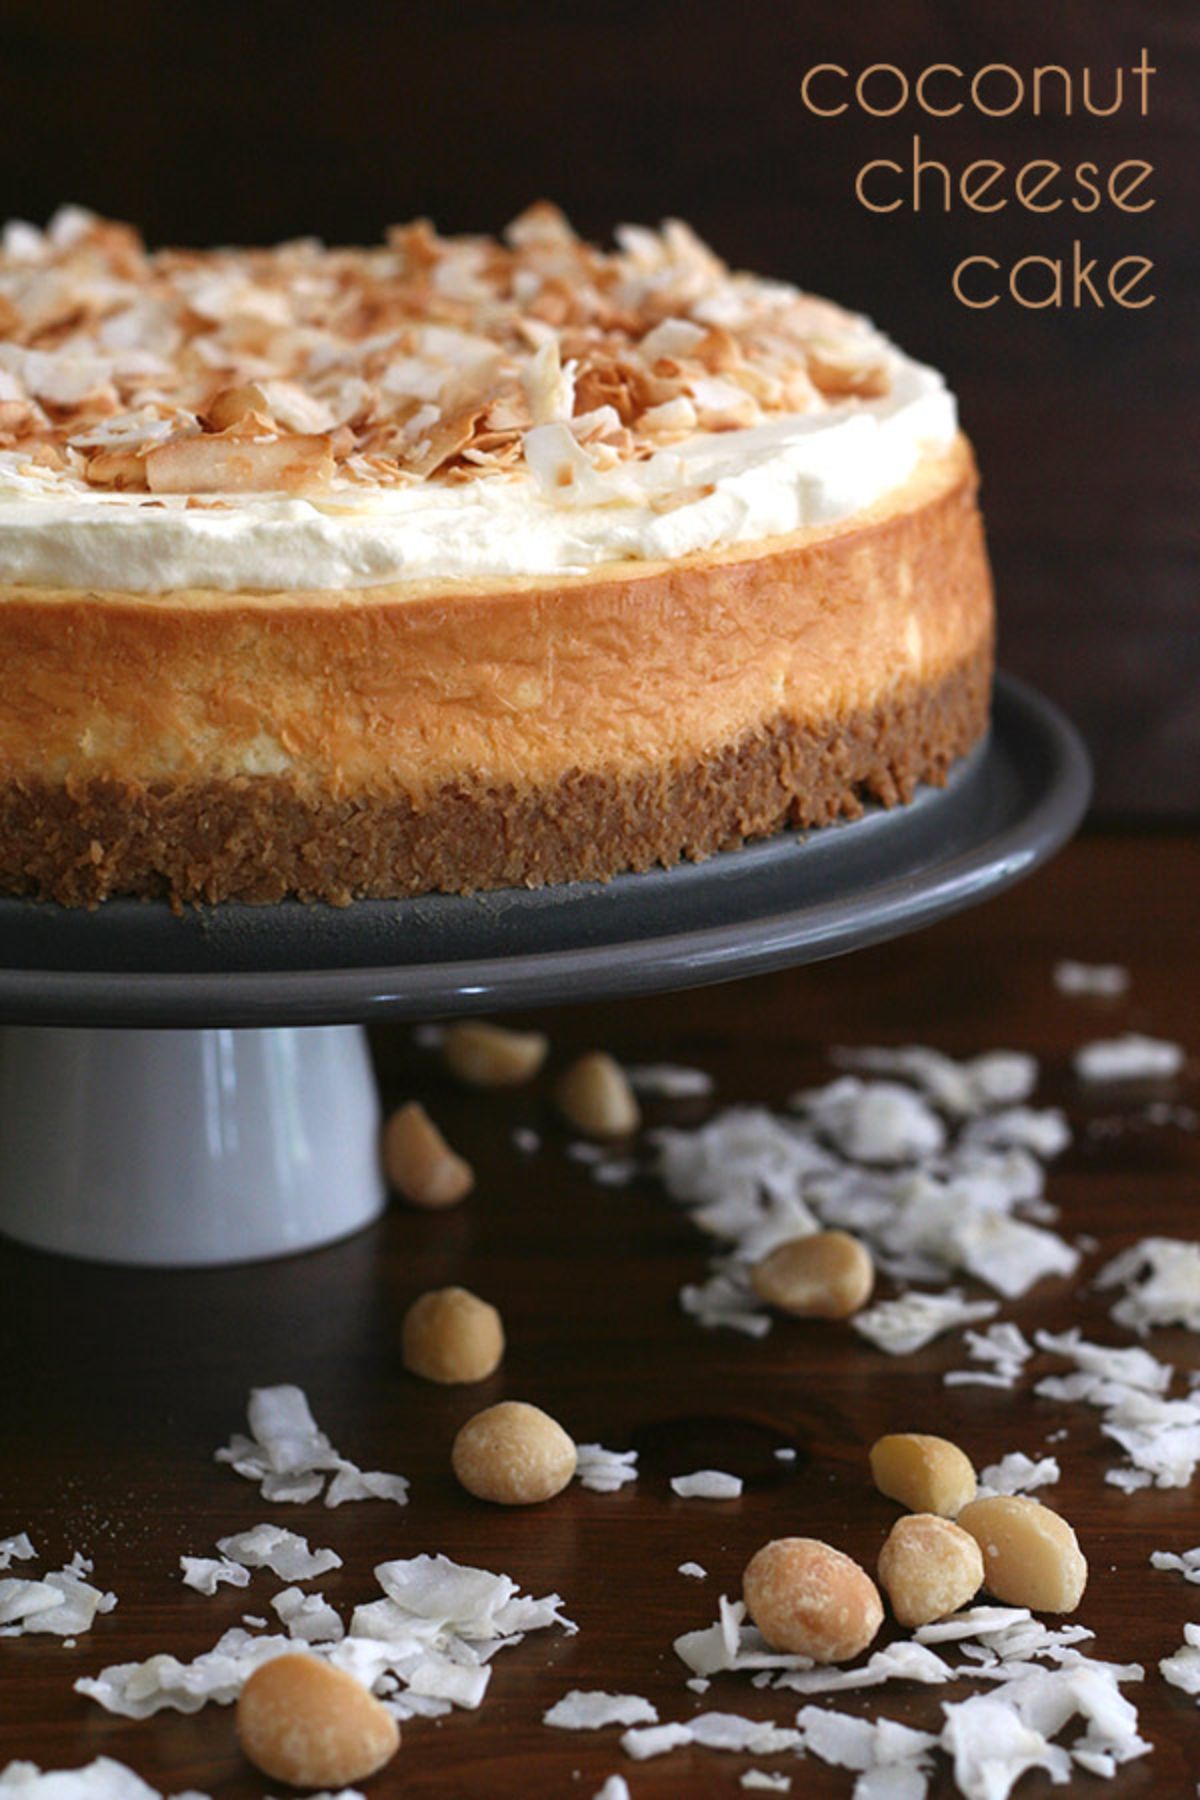 On a drak background a 3 layered cheesecake sits on a ckae stand sprinknled with flaked almonds